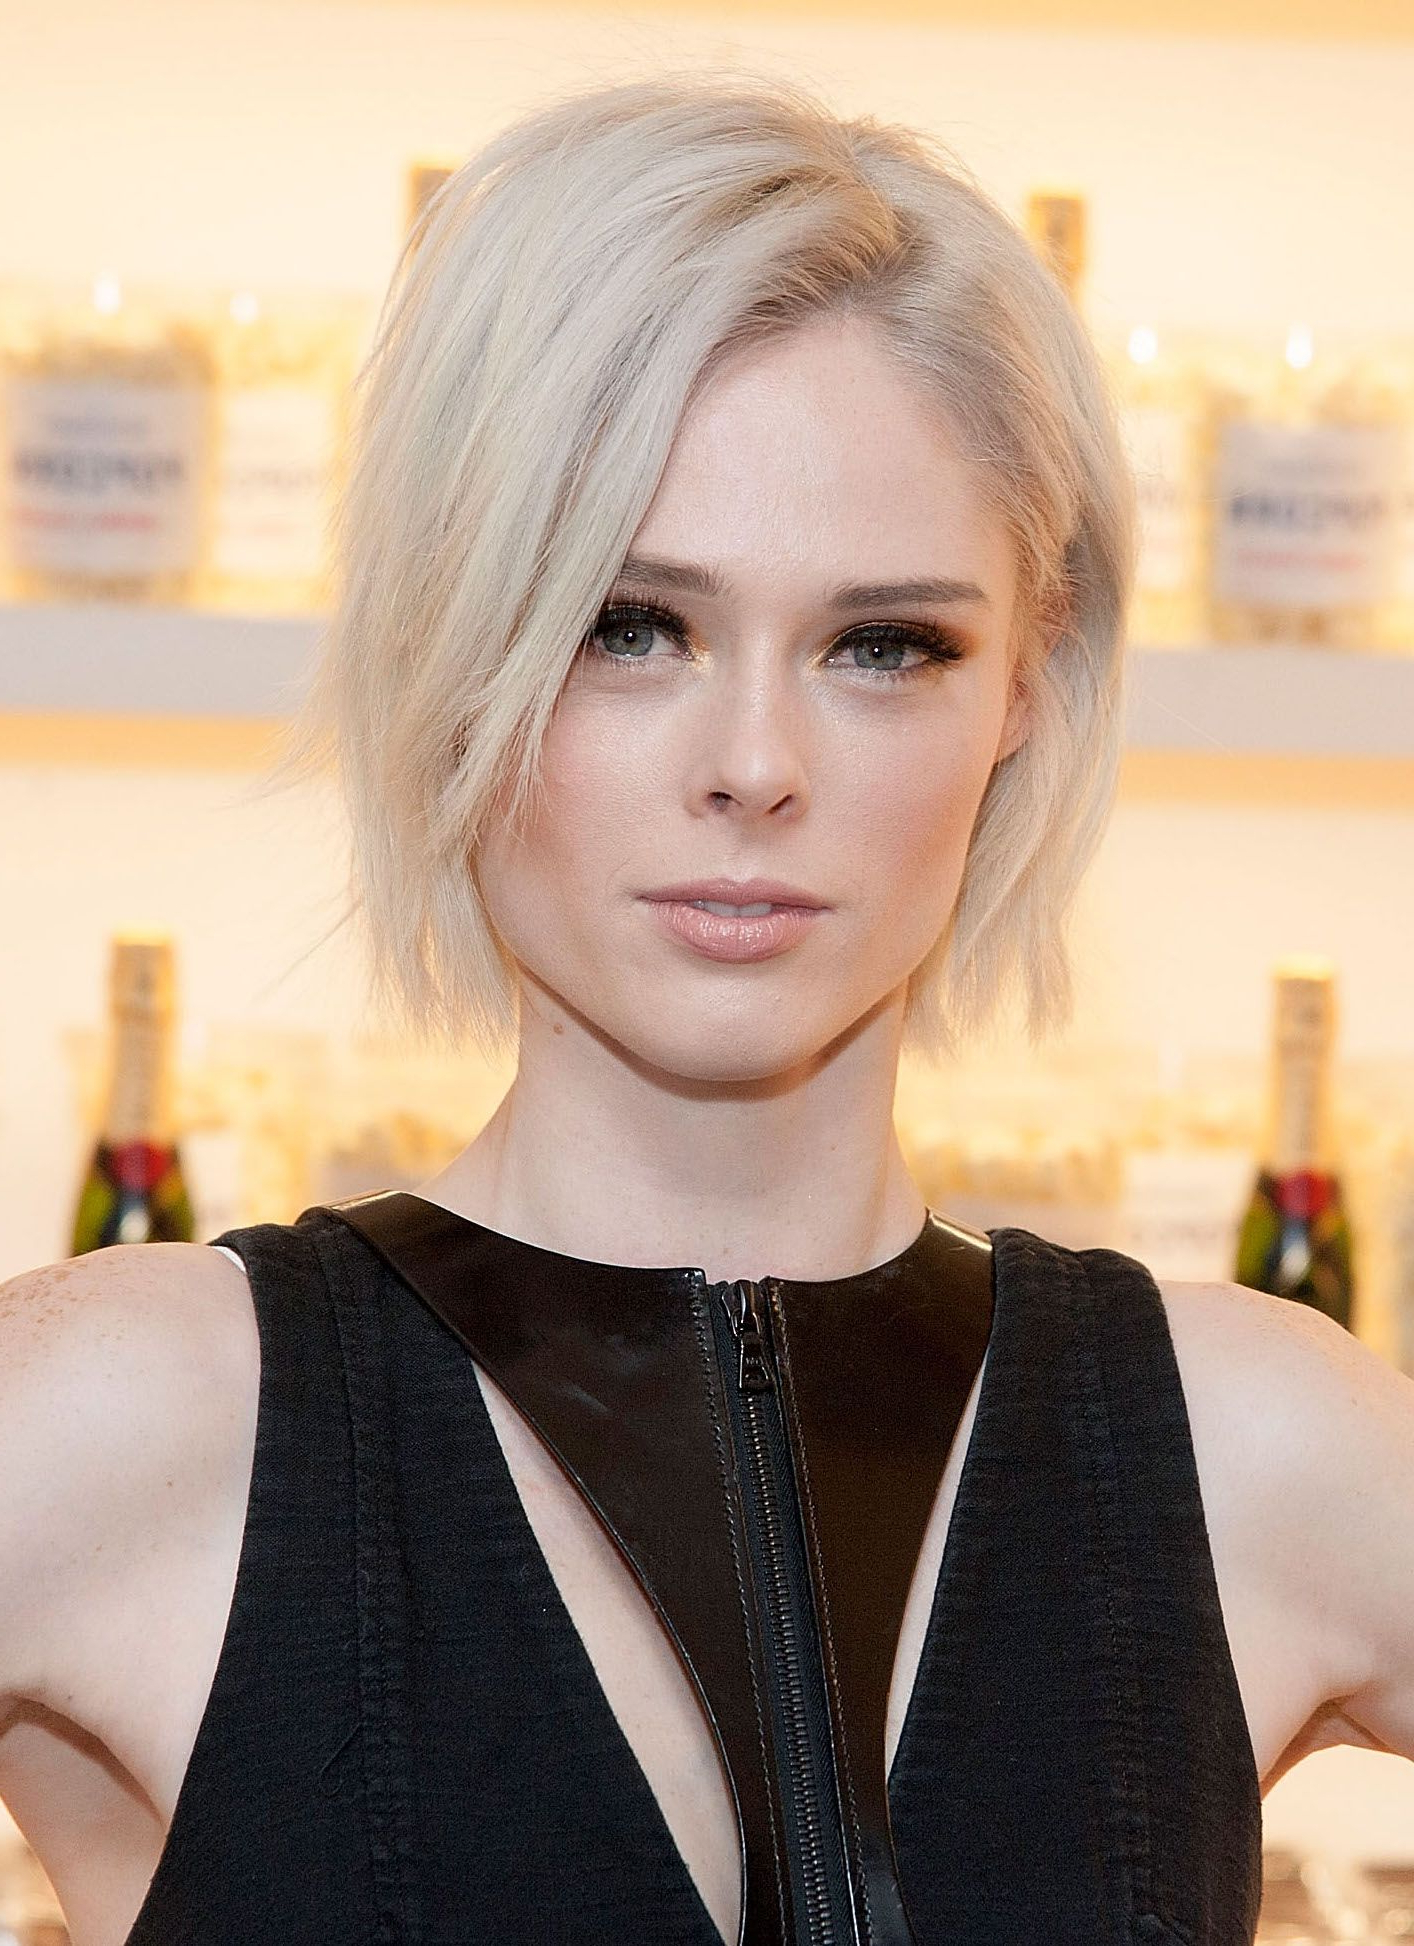 45 Bob Hairstyles For 2019 – Bob Haircuts To Copy This Year Intended For Classy Bob Haircuts With Bangs (View 16 of 20)